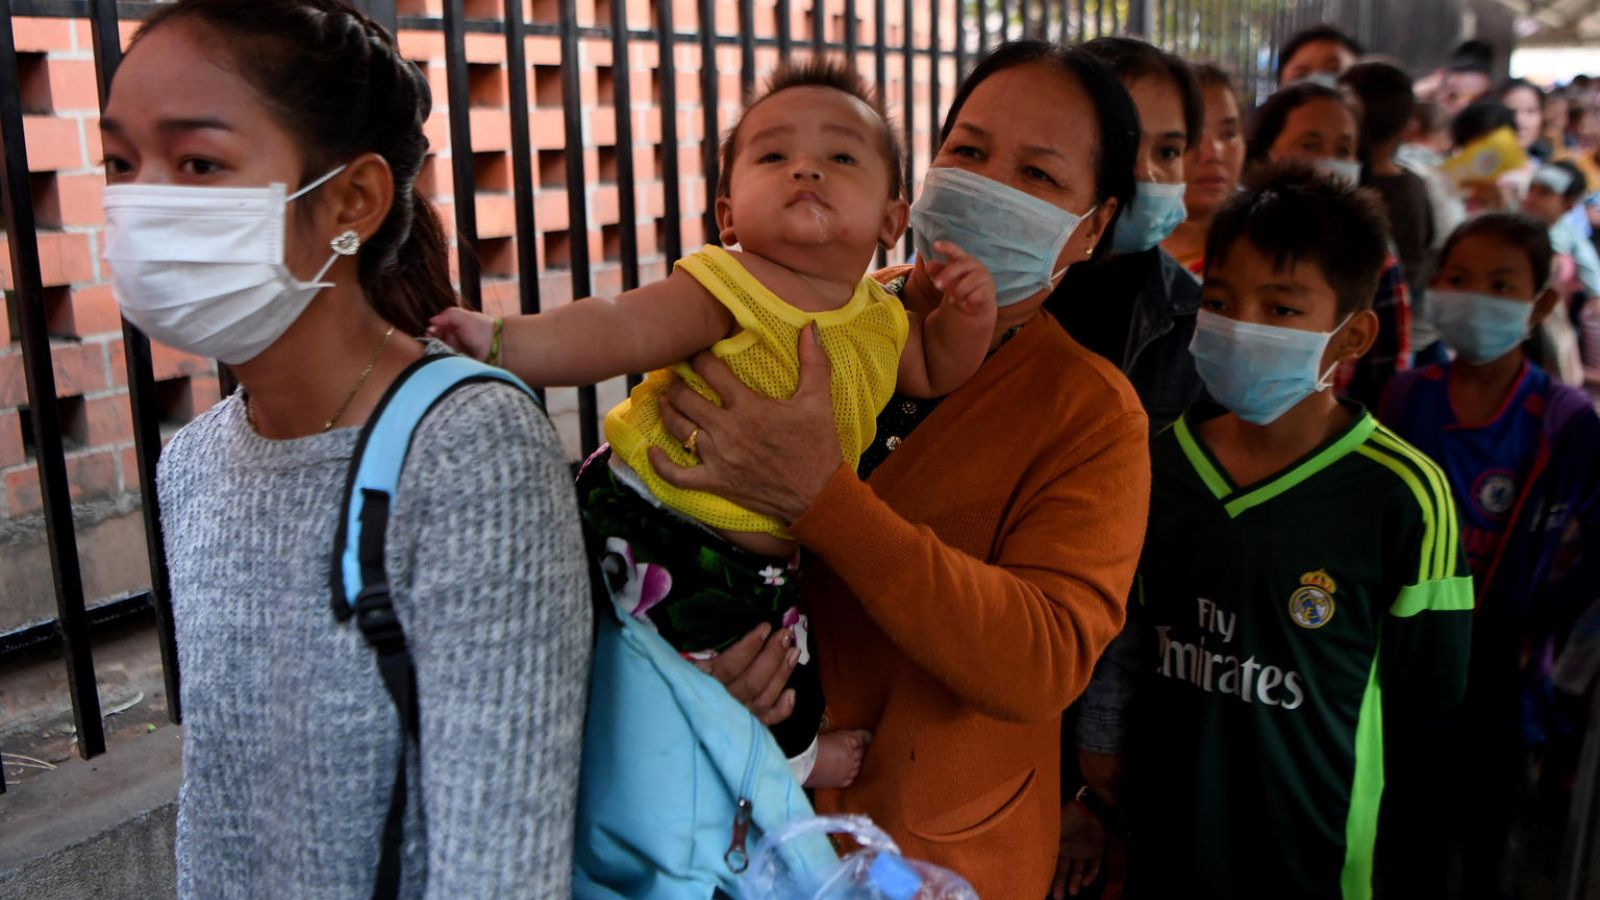 People wear face masks as they wait to enter a children's hospital in Phnom Penh on January 30, 2020